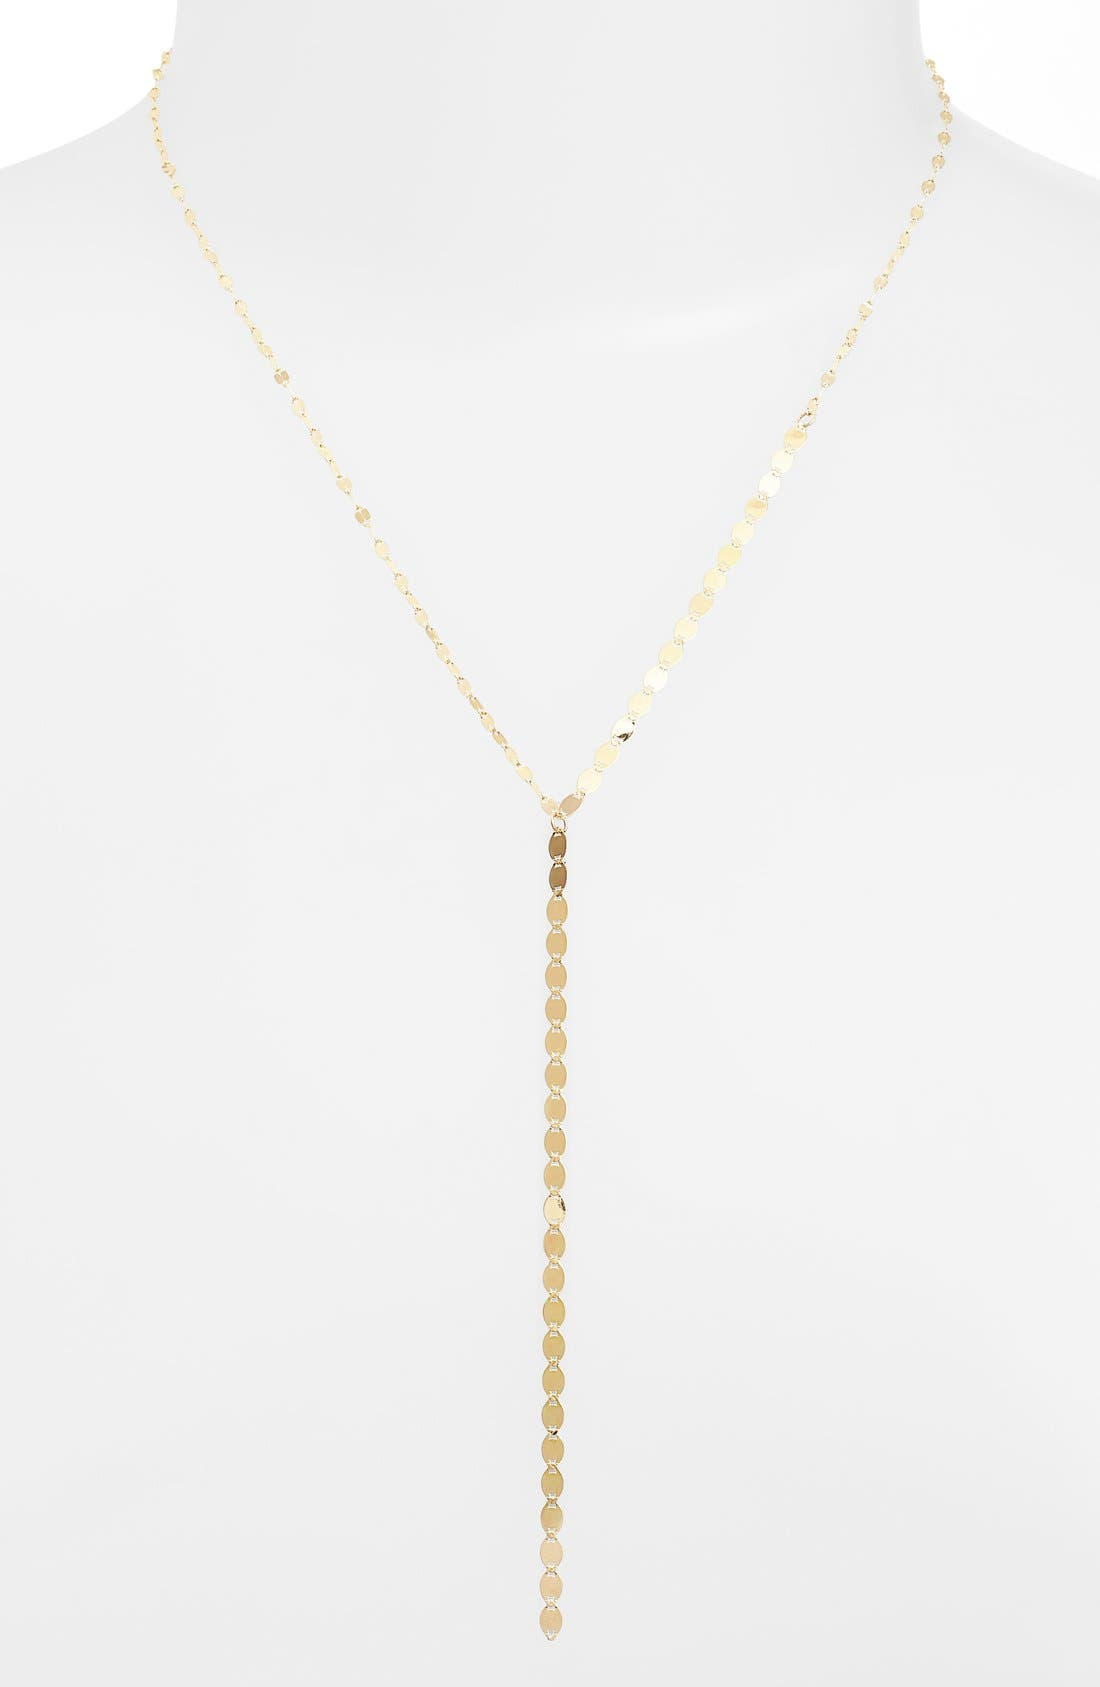 'Nude' Y-Necklace,                             Main thumbnail 1, color,                             YELLOW GOLD